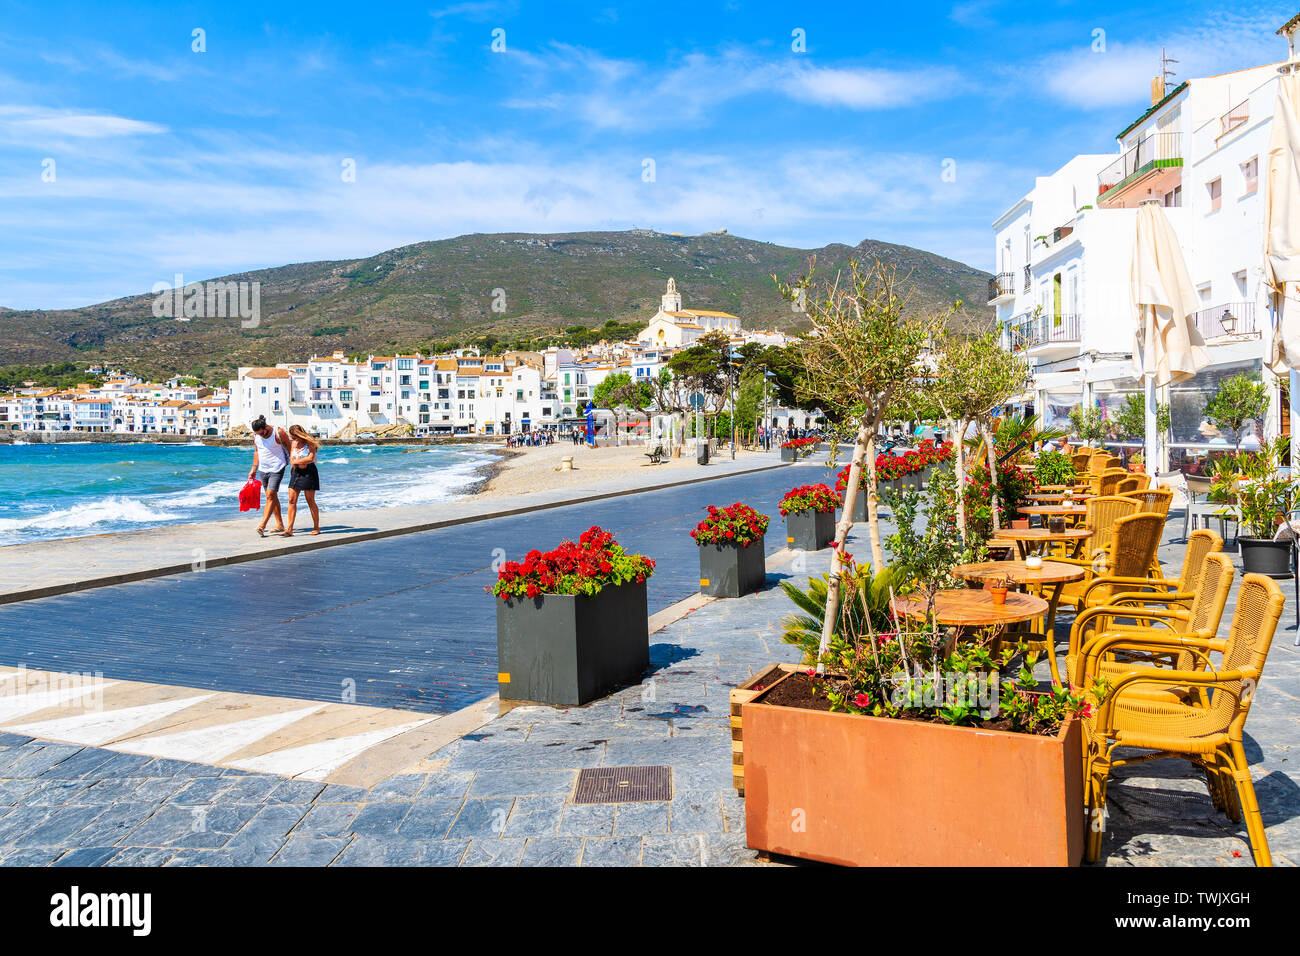 Unidentified young couple walking along beach in Cadaques white village, Costa Brava, Spain Stock Photo